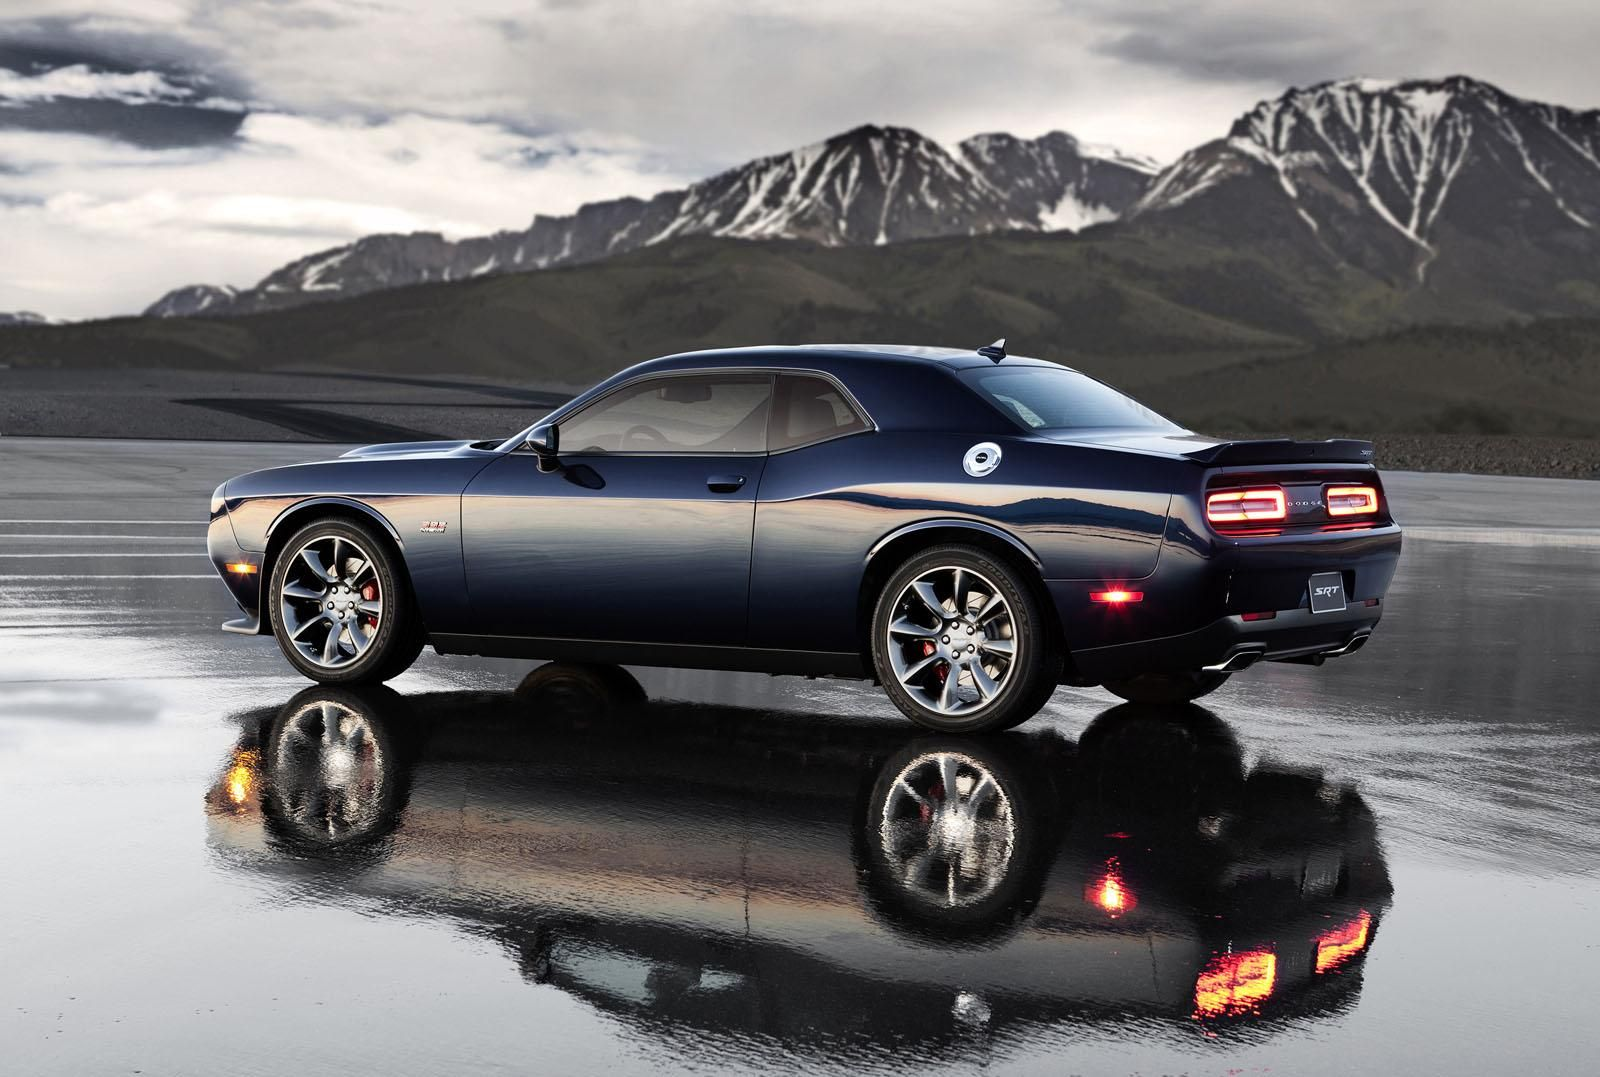 1000 ideas about dodge challenger specs on pinterest dodge challenger dodge and lotus elise 2008 dodge challenger srt8